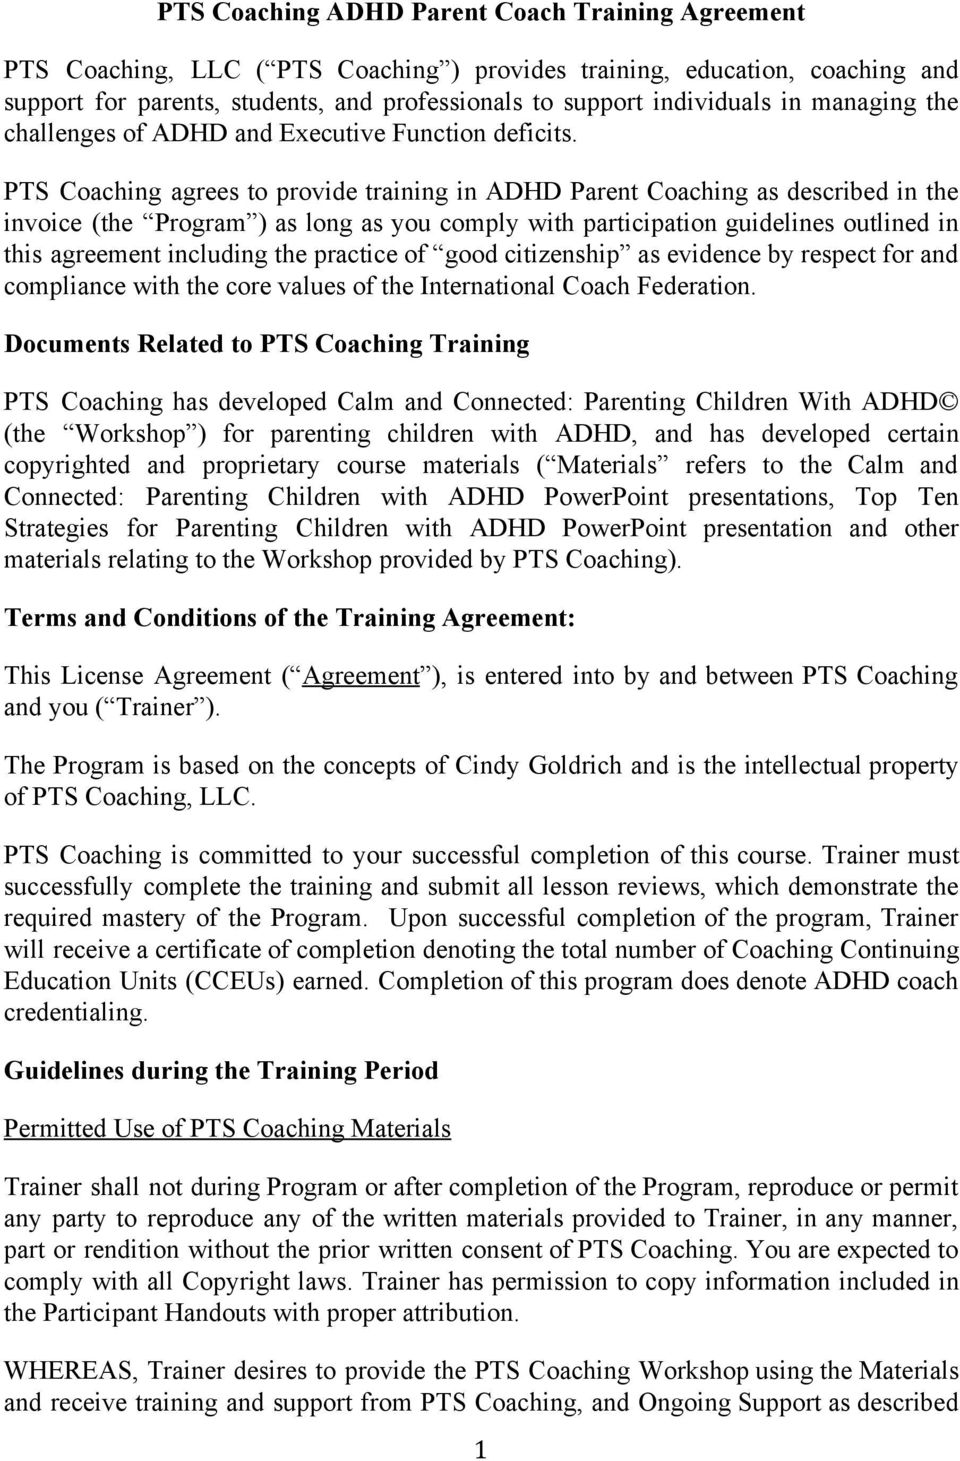 PTS Coaching agrees to provide training in ADHD Parent Coaching as described in the invoice (the Program ) as long as you comply with participation guidelines outlined in this agreement including the